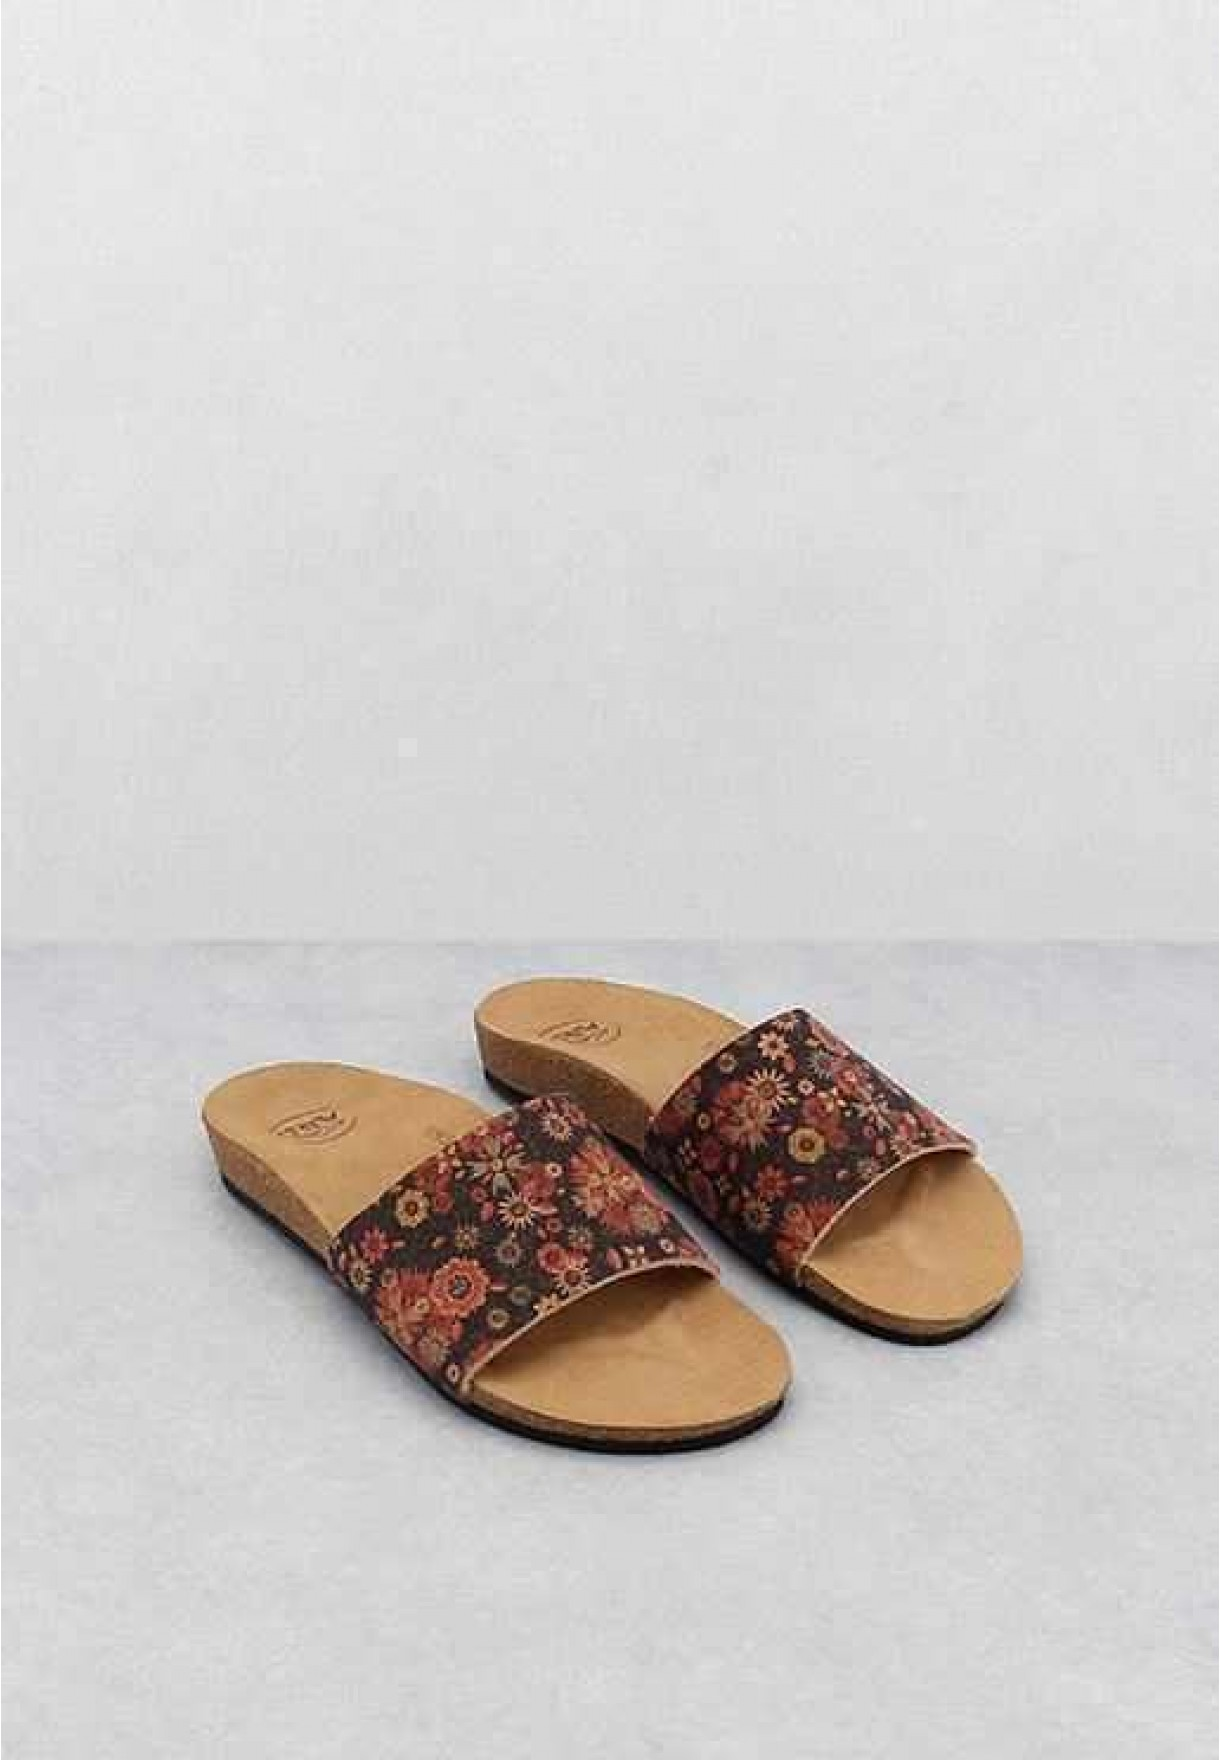 ASC Women's Slipper